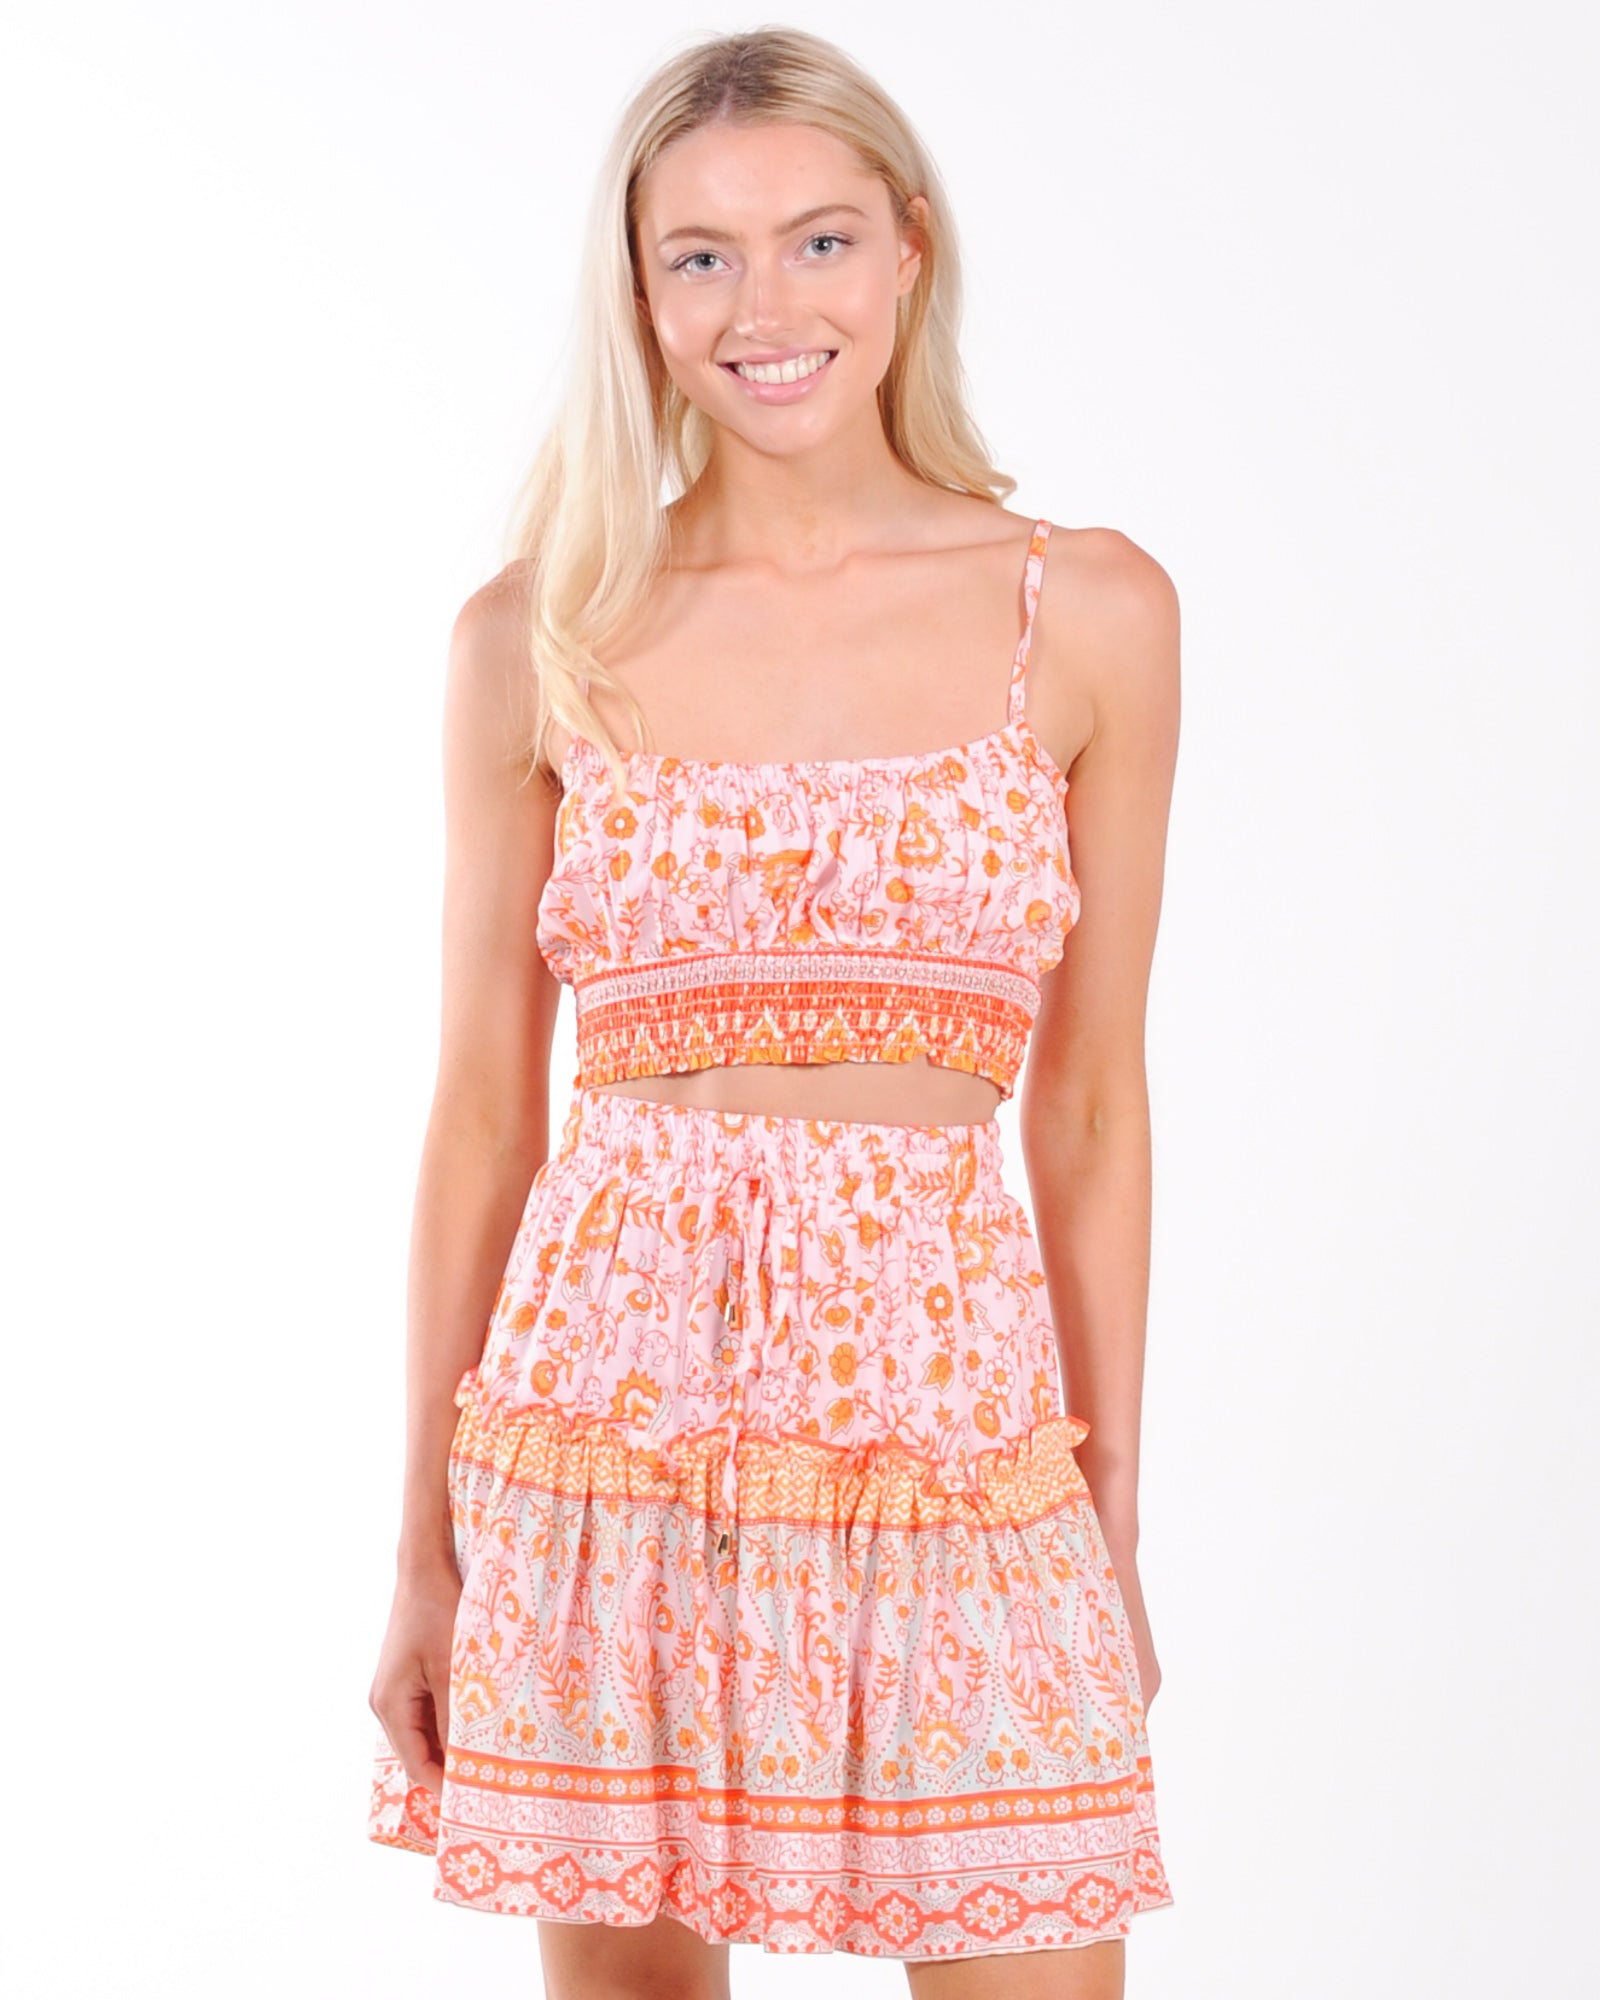 Chain Reaction Crop Top - Orange